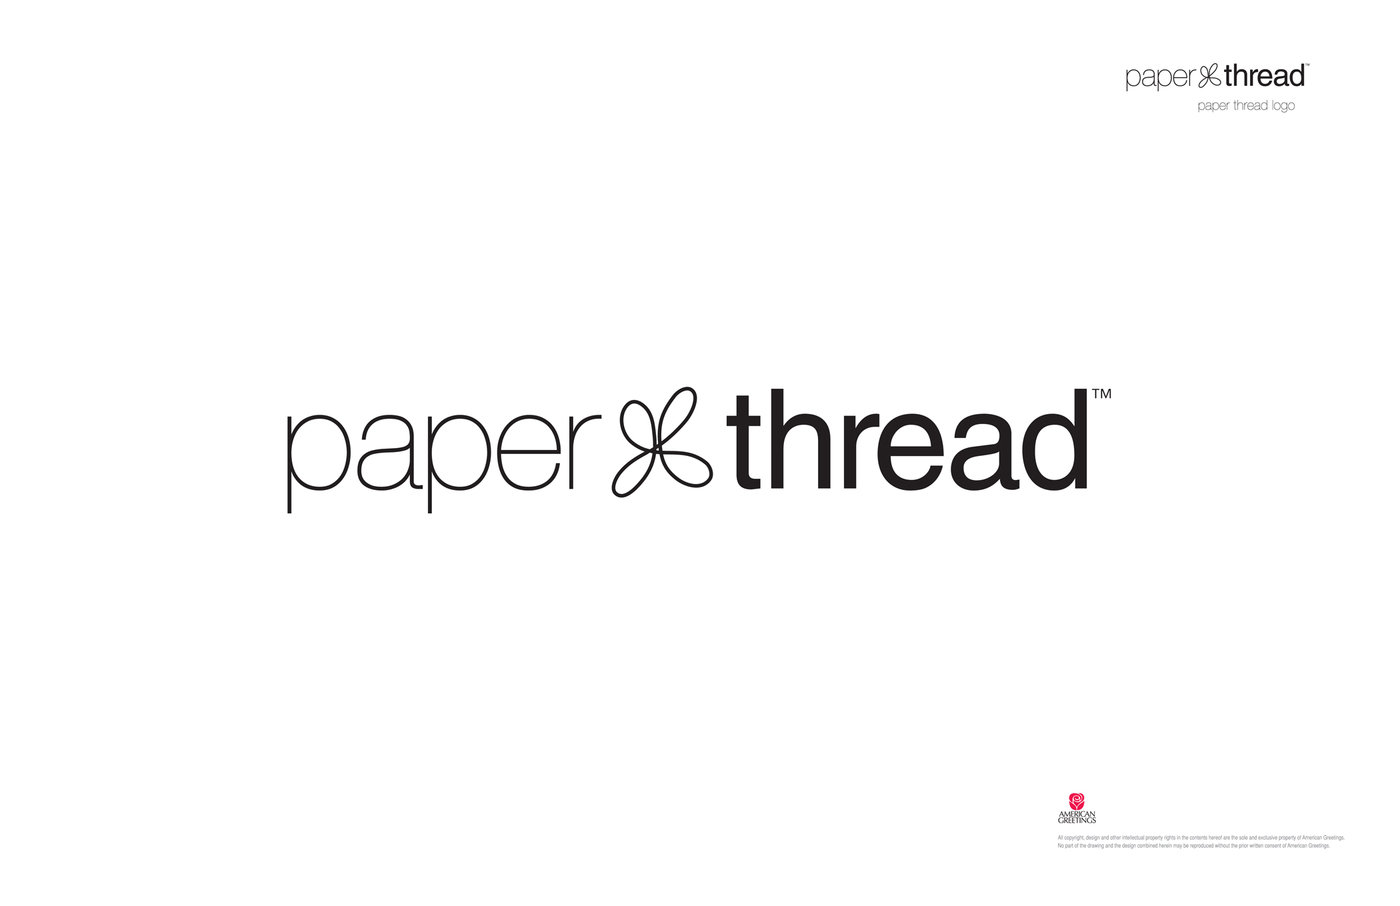 American greetings paper thread concept by elizabeth olson at paper thread logo paper thread brand supports the nurturing of womens relationships through the four es enjoy enrich encourage and engage kristyandbryce Gallery